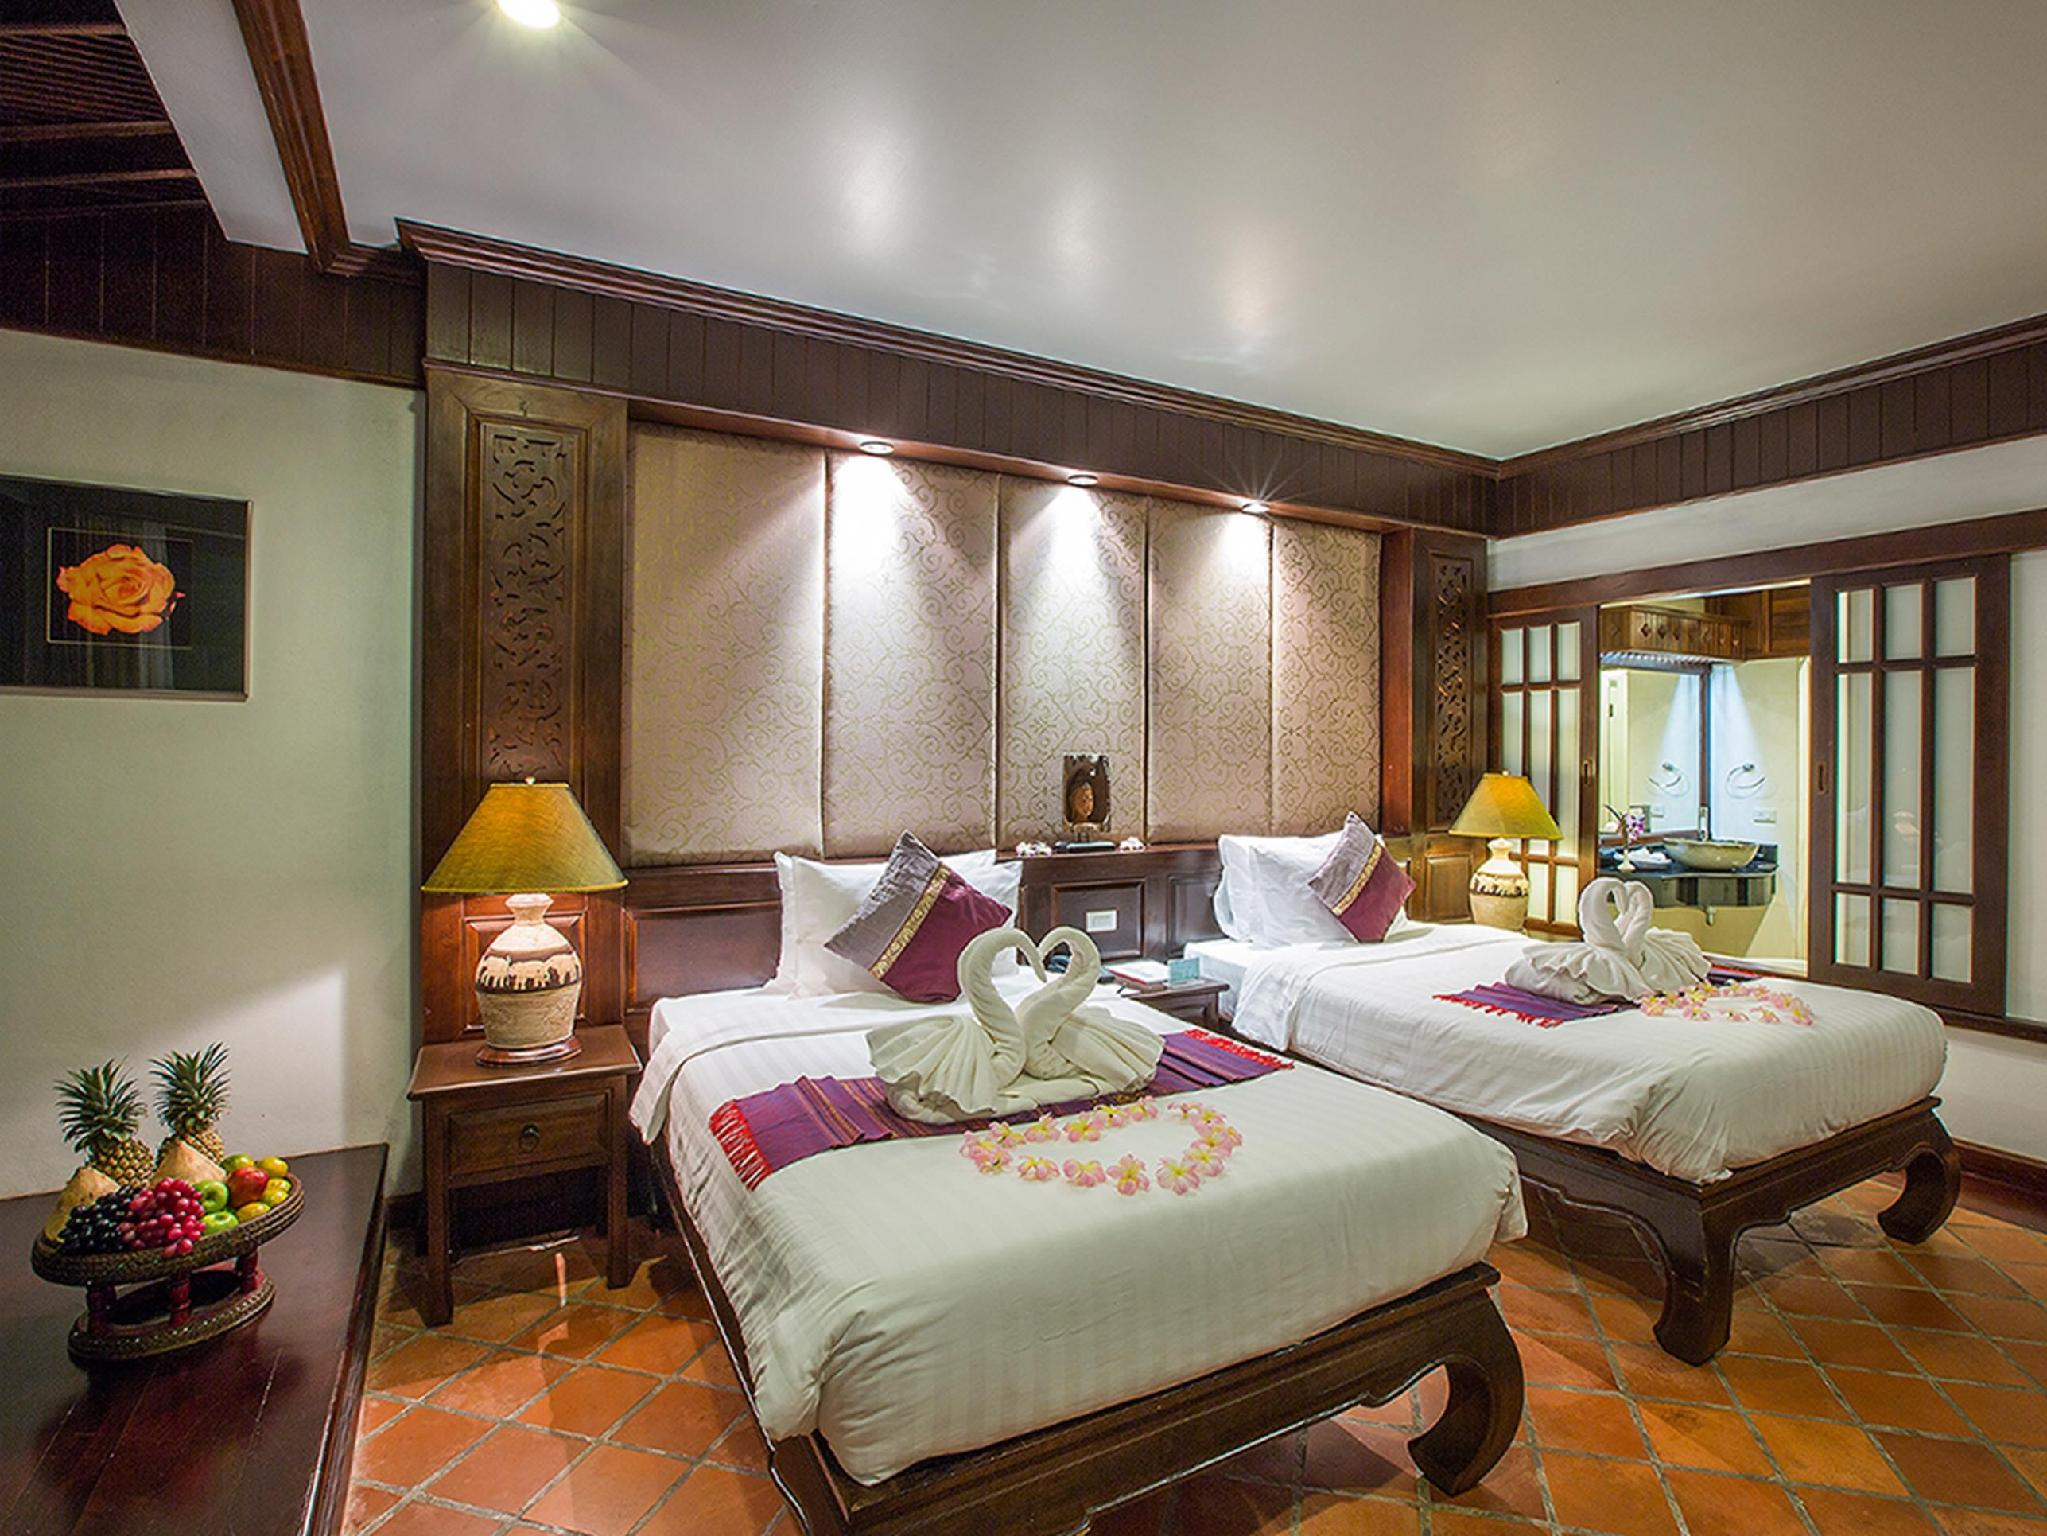 Deluxe Room with two twin beds